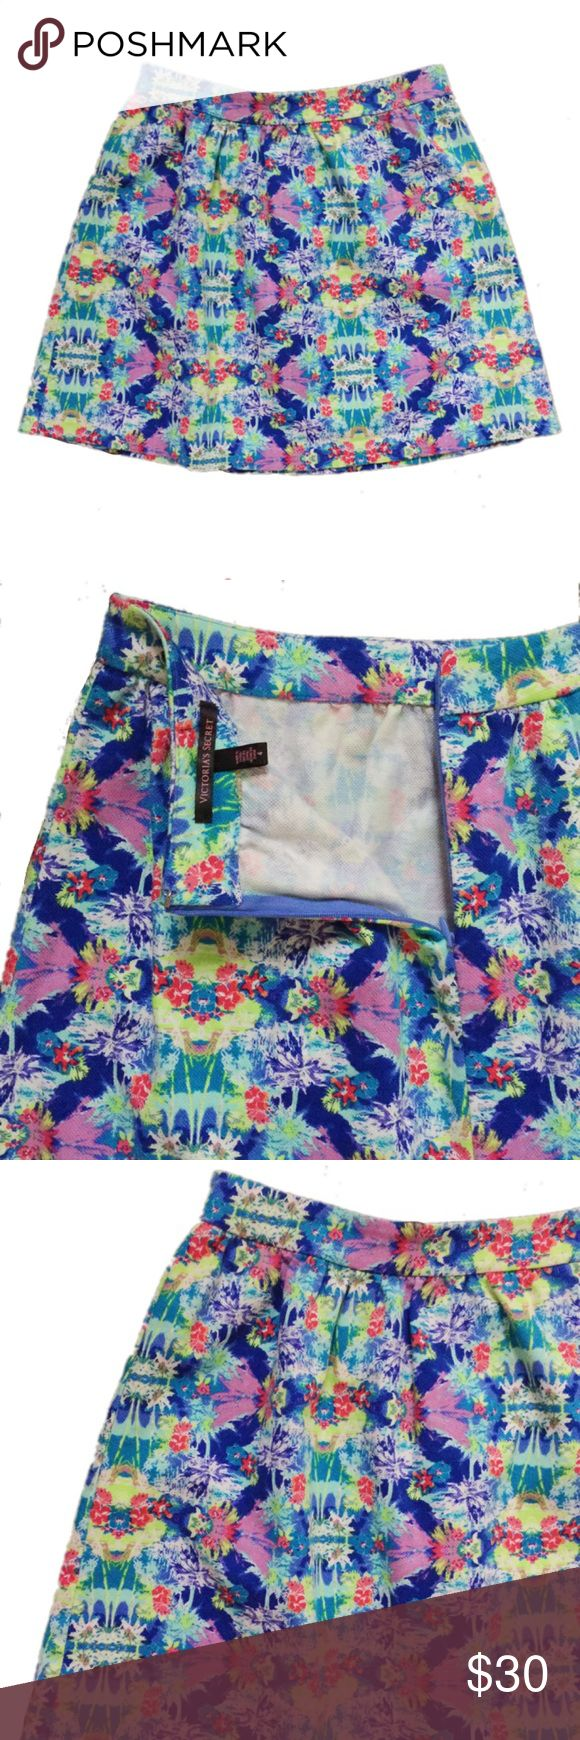 """Victoria's Secret Tropical Print Skirt Waist: approx. 14"""" Length: approx 17"""" (shoulder to hem)  Cotton. A brightly patterned A-Line skirt that's perfect to dress up or down! Hidden zipper closure at the back. No holes, stains or imperfections. Comes from a smoke free environment.  📦Bundles welcome 👌🏻Offers welcome through offer button. ❌NO trades, please. ⚡️Same/Next day shipping Victoria's Secret Skirts"""